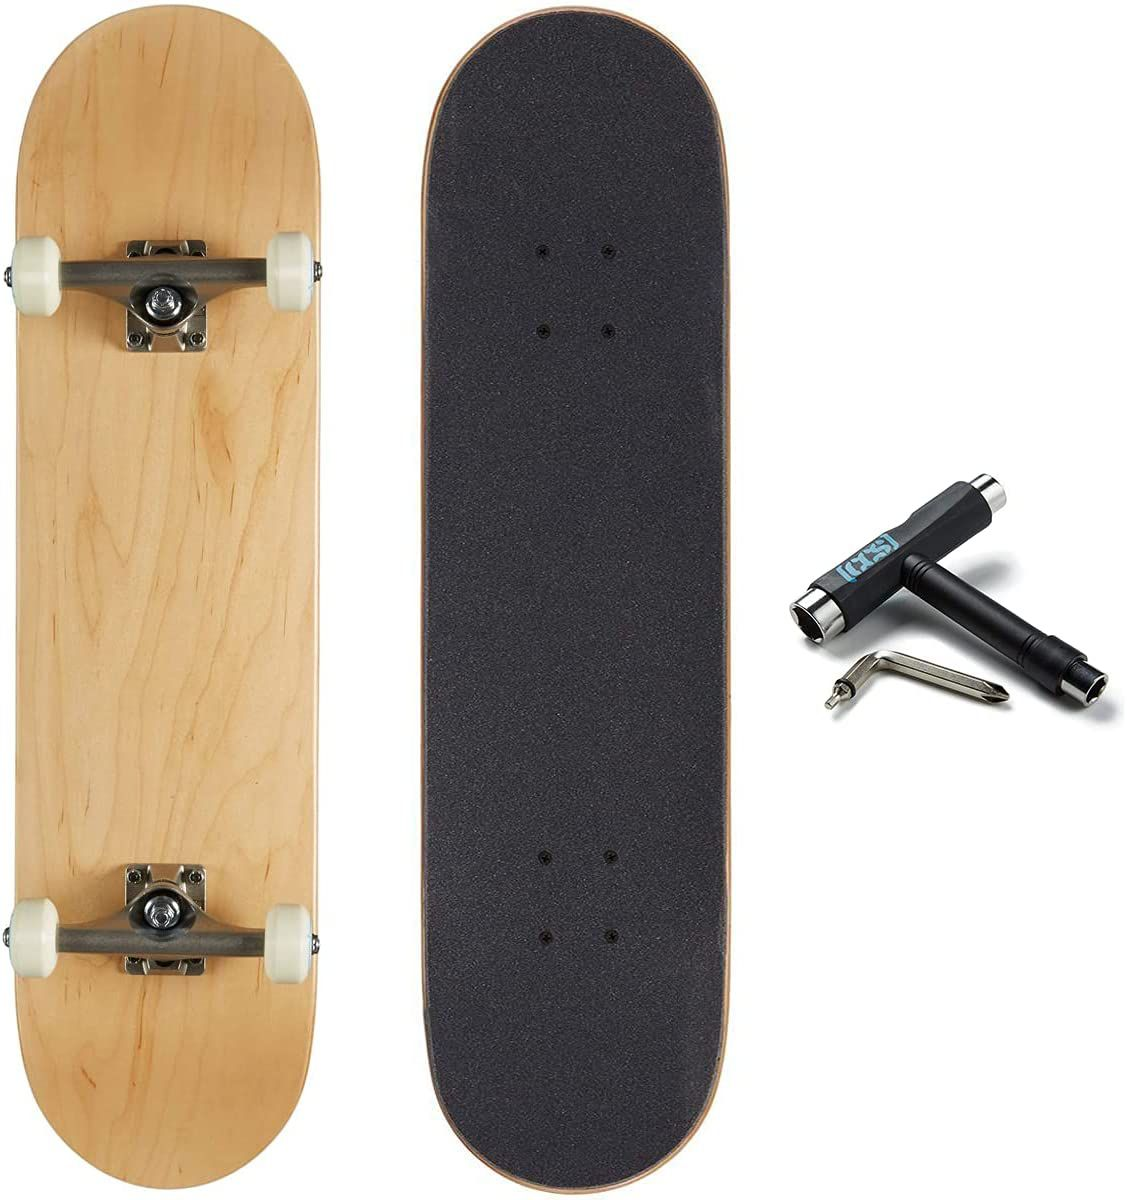 CSS Blank Skateboard Complete